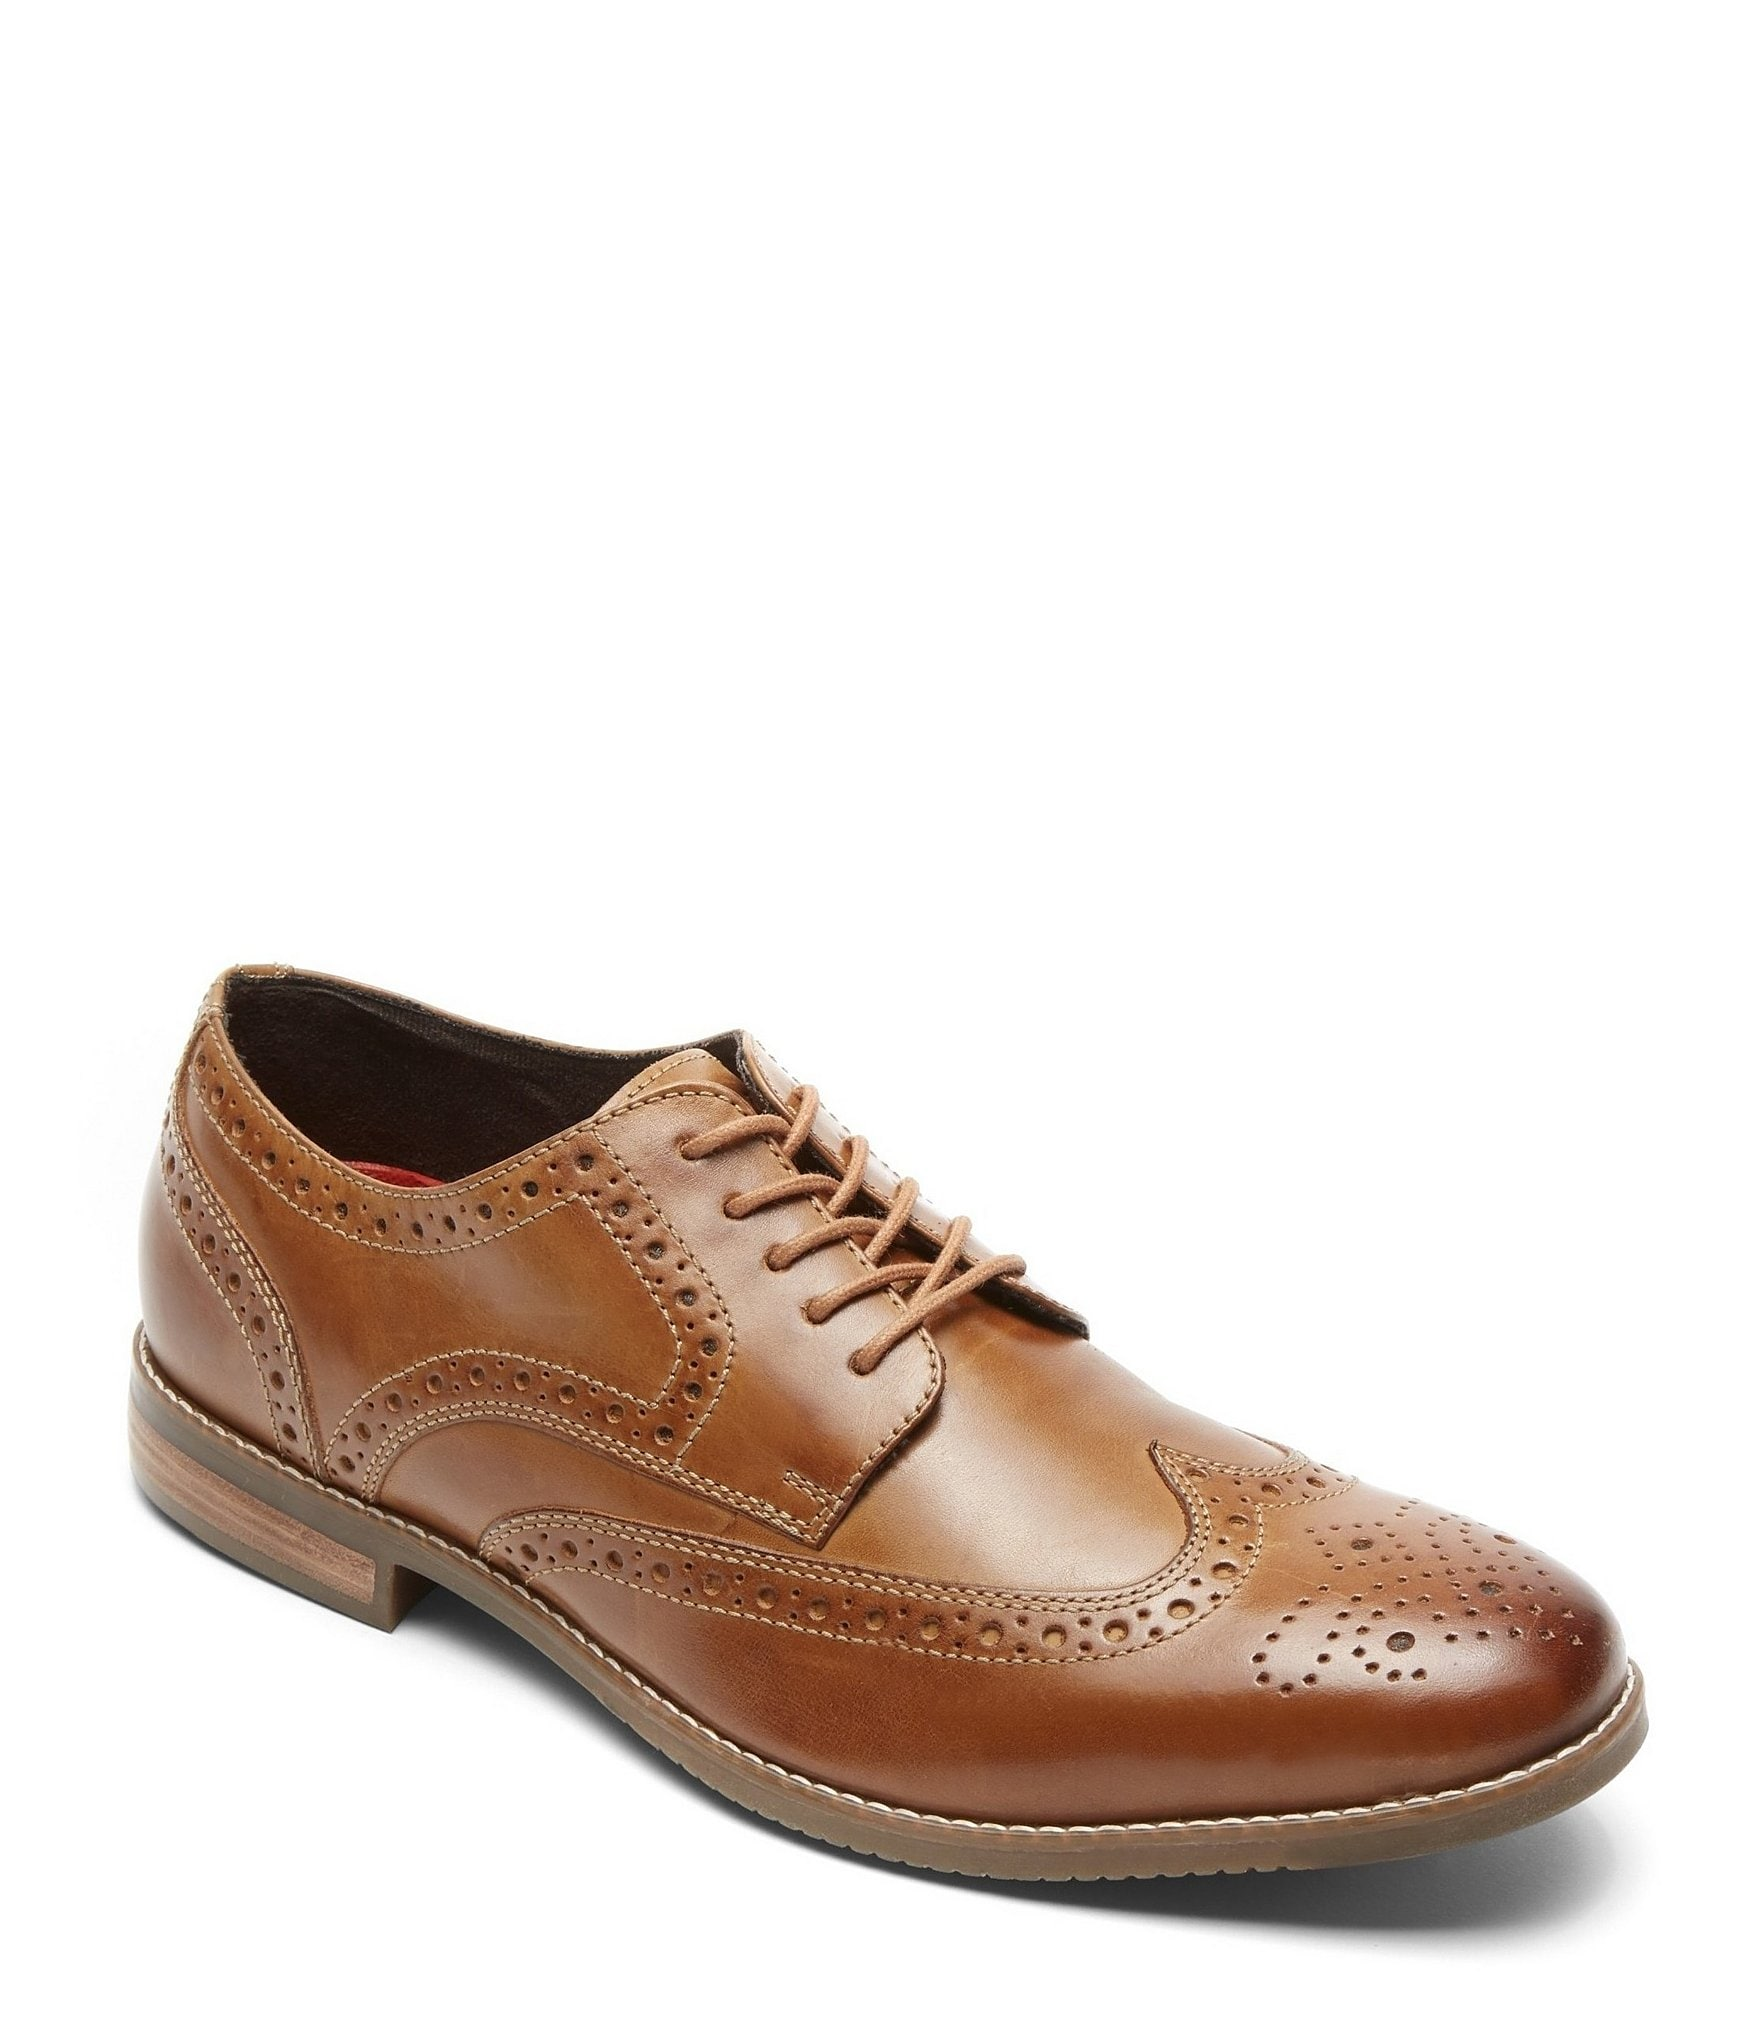 855a3fddab2ee Rockport Shoes | Dillard's